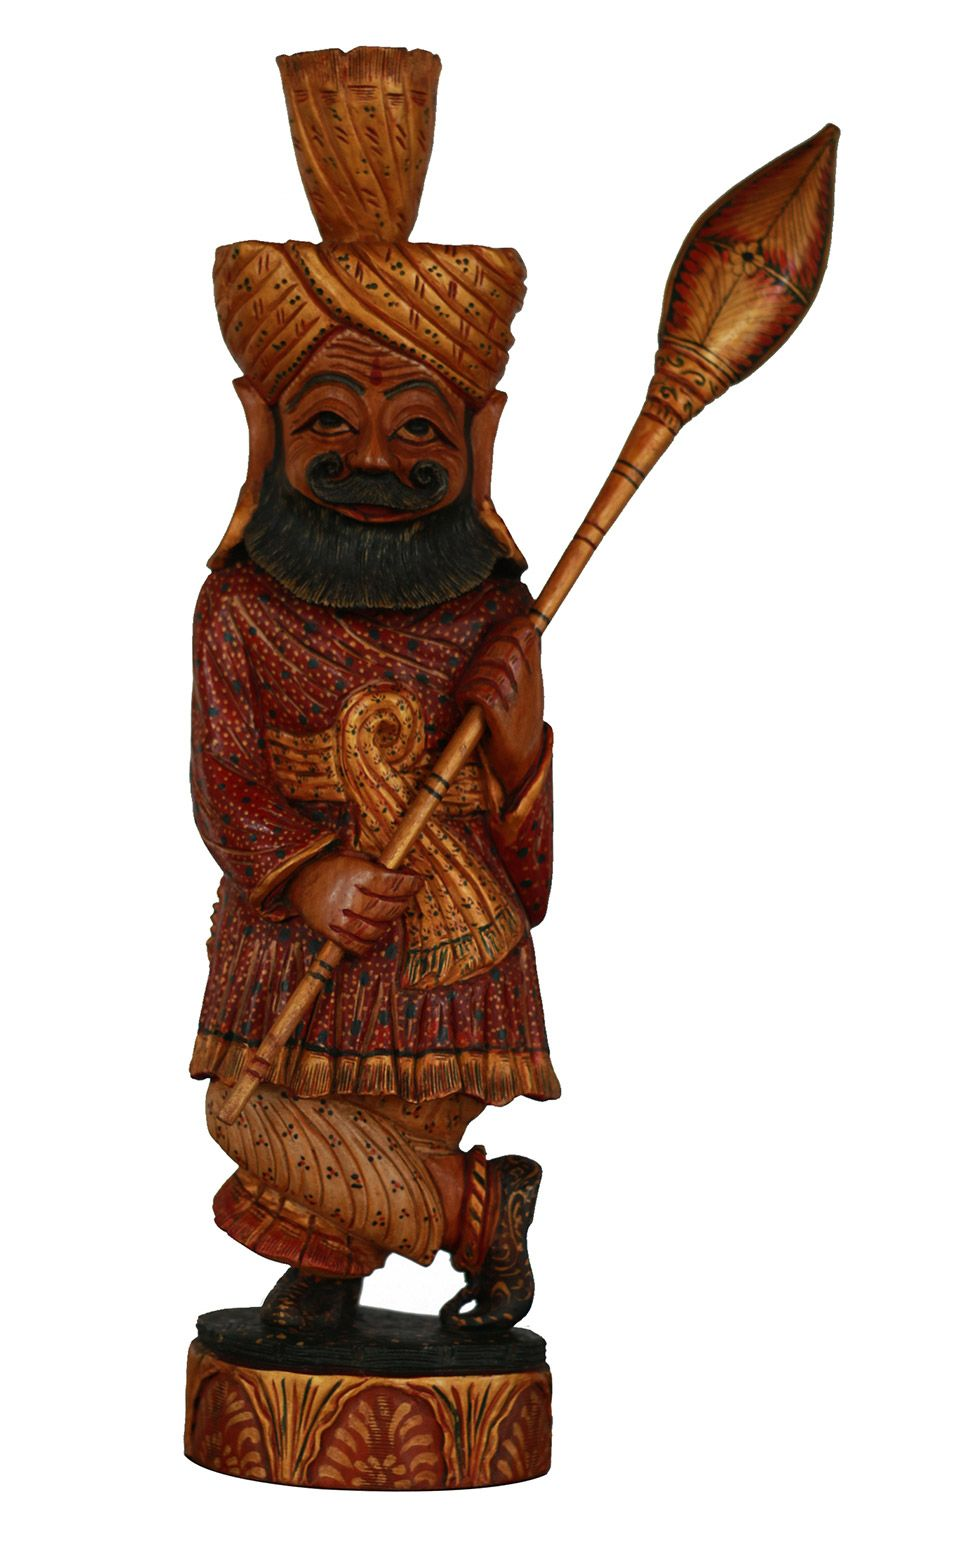 Indian Hand Carved Wood Statues And Hand Carved Wood Art From Rajasthan For Sale Handcrafted Carved Wooden Stat Online Art Store Wood Statues Traditional Art